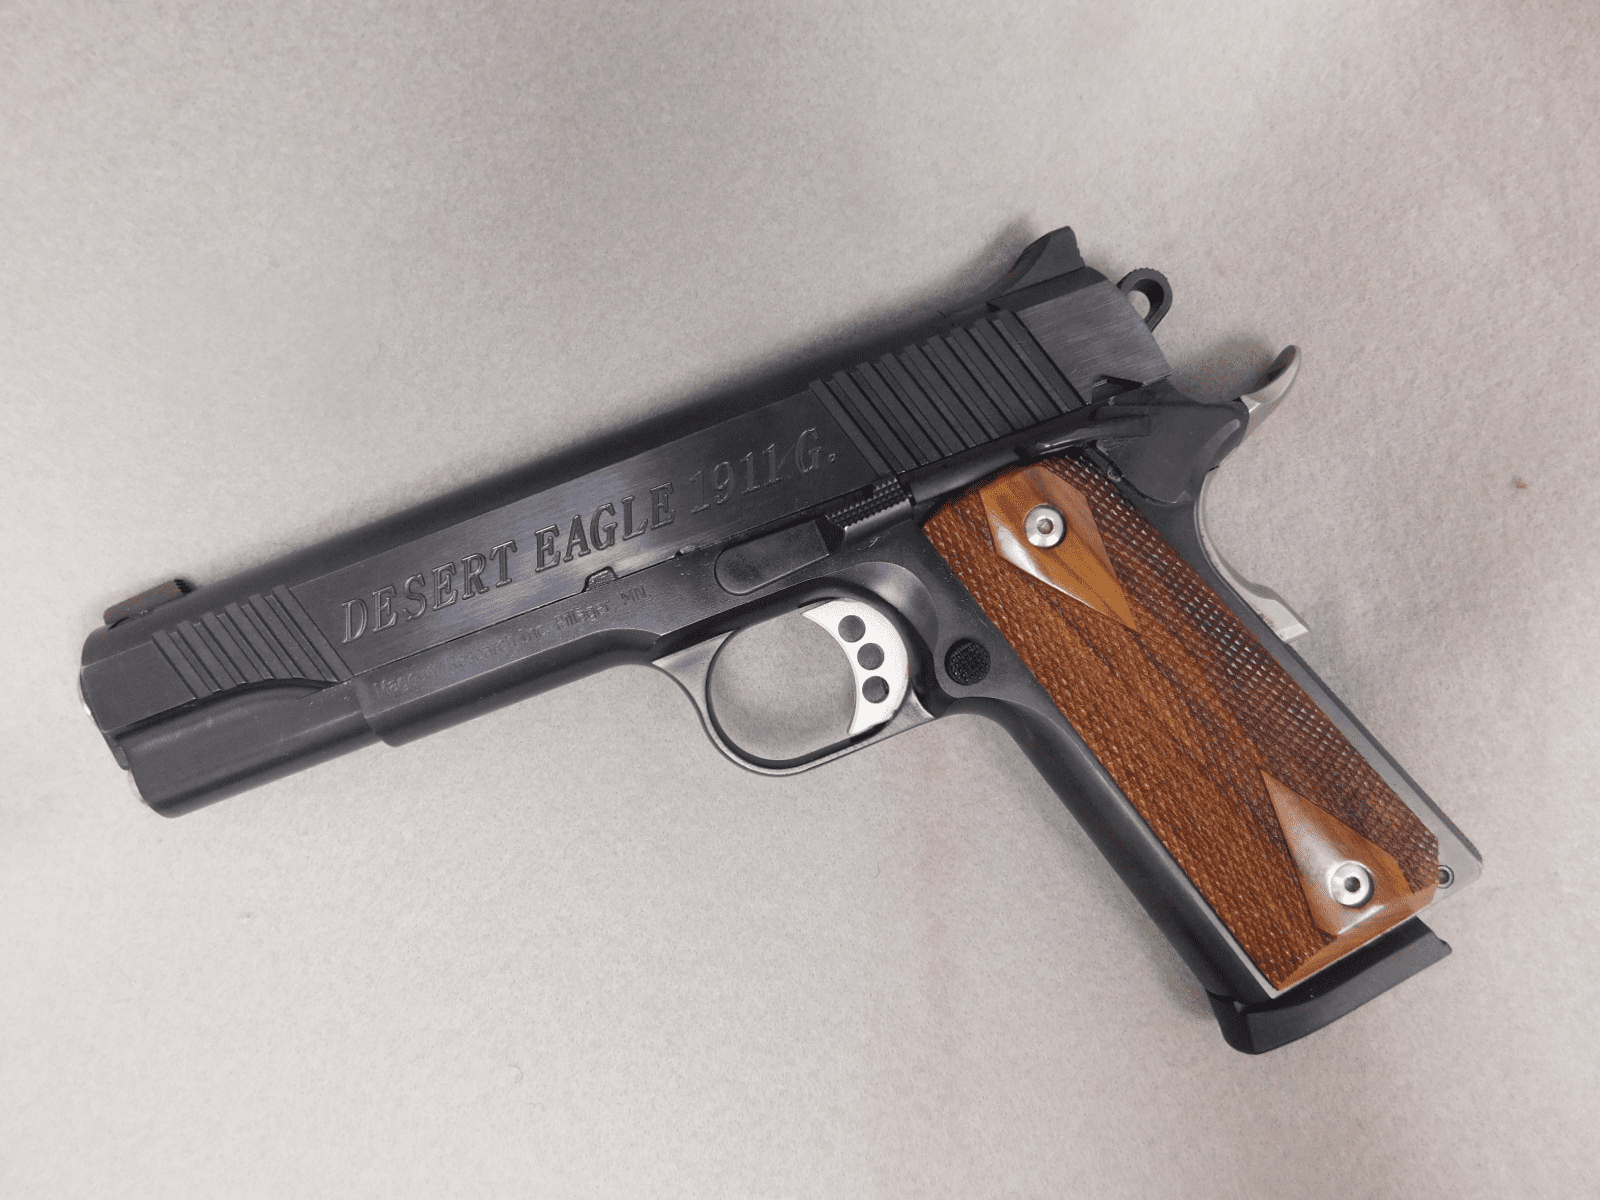 Magnum Research Desert Eagle 1911 (.45)